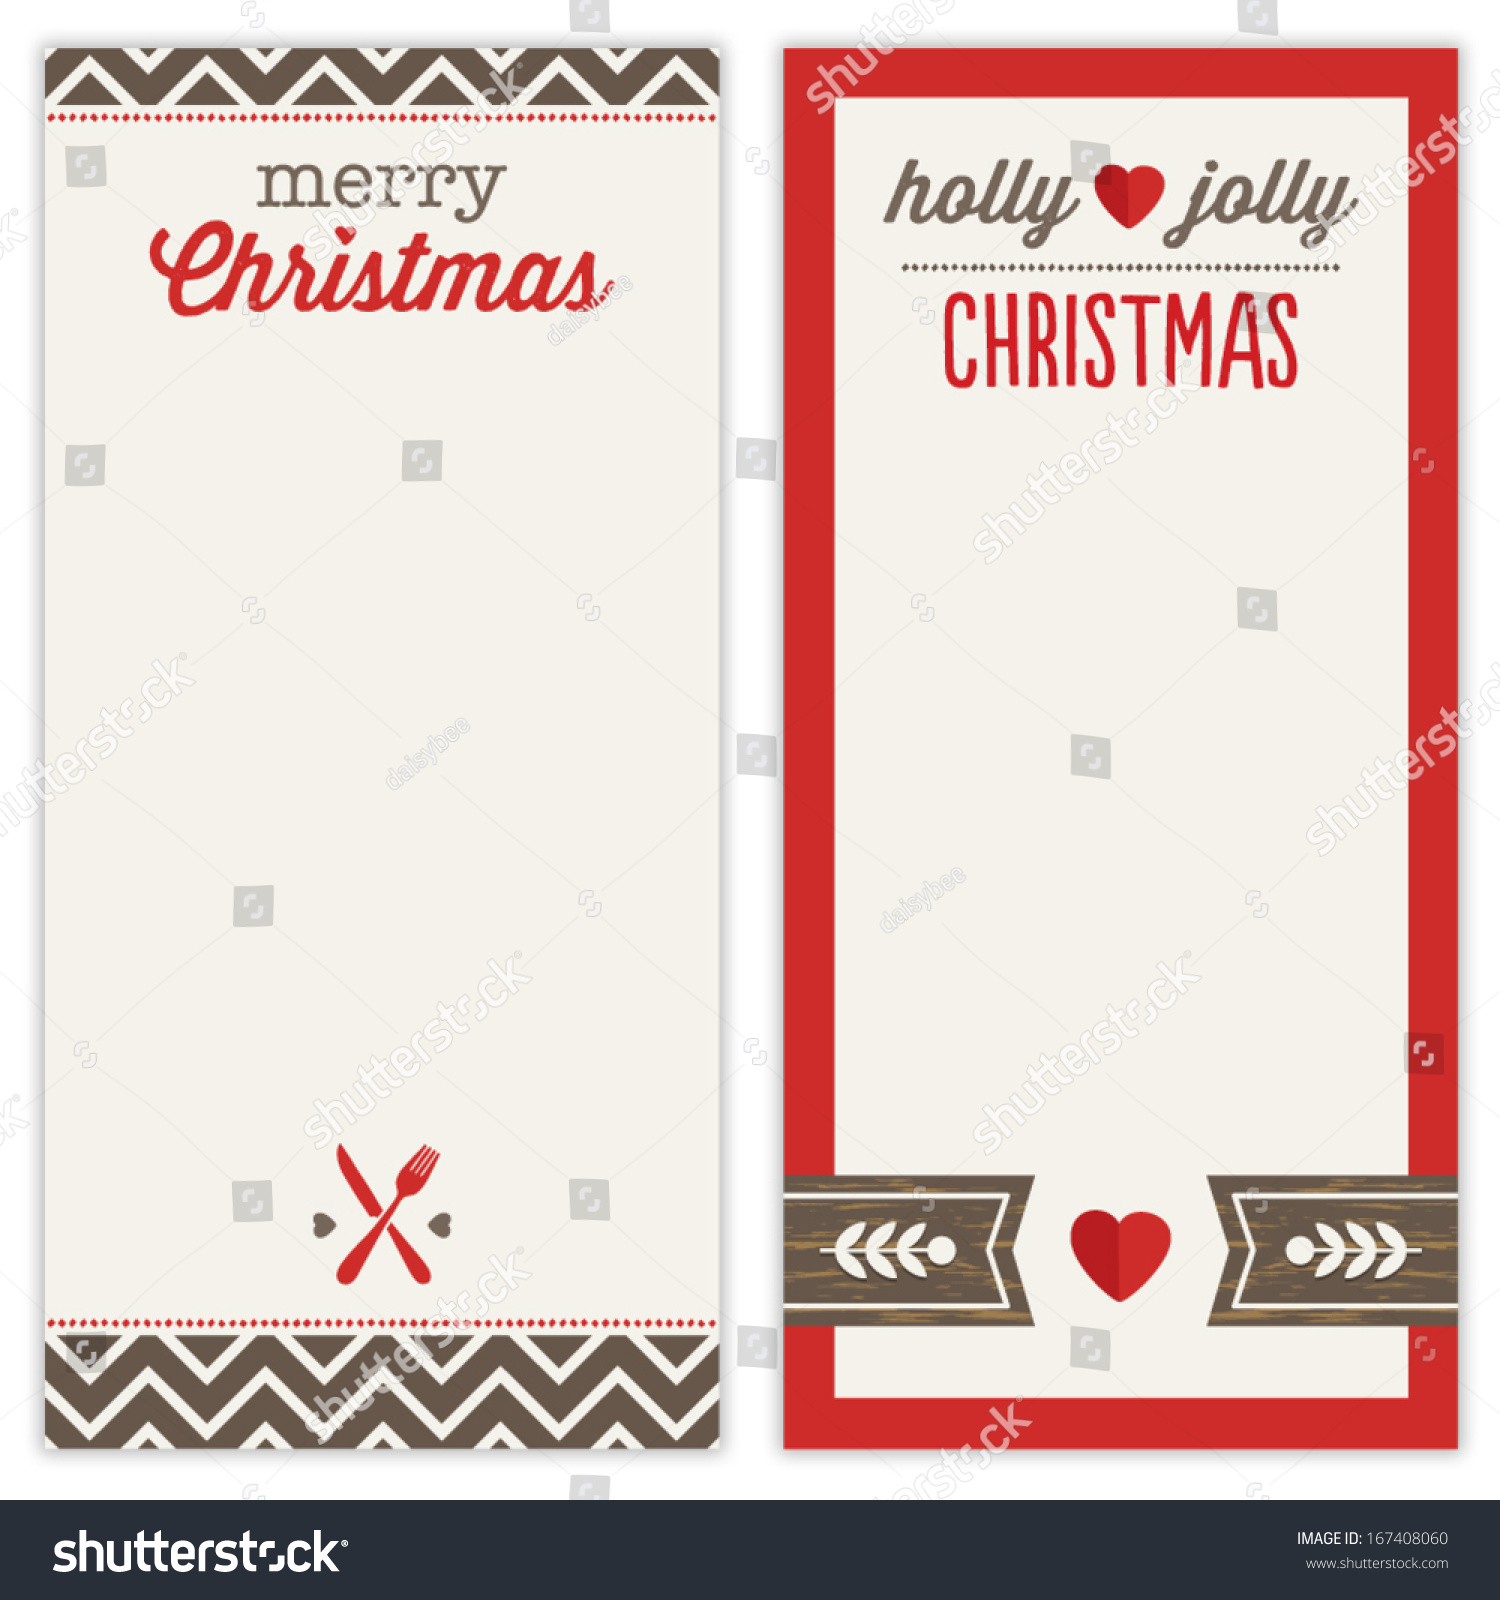 Cute Set Christmas Background Designs Red Vector 167408060 – Christmas Dinner Shopping List Template